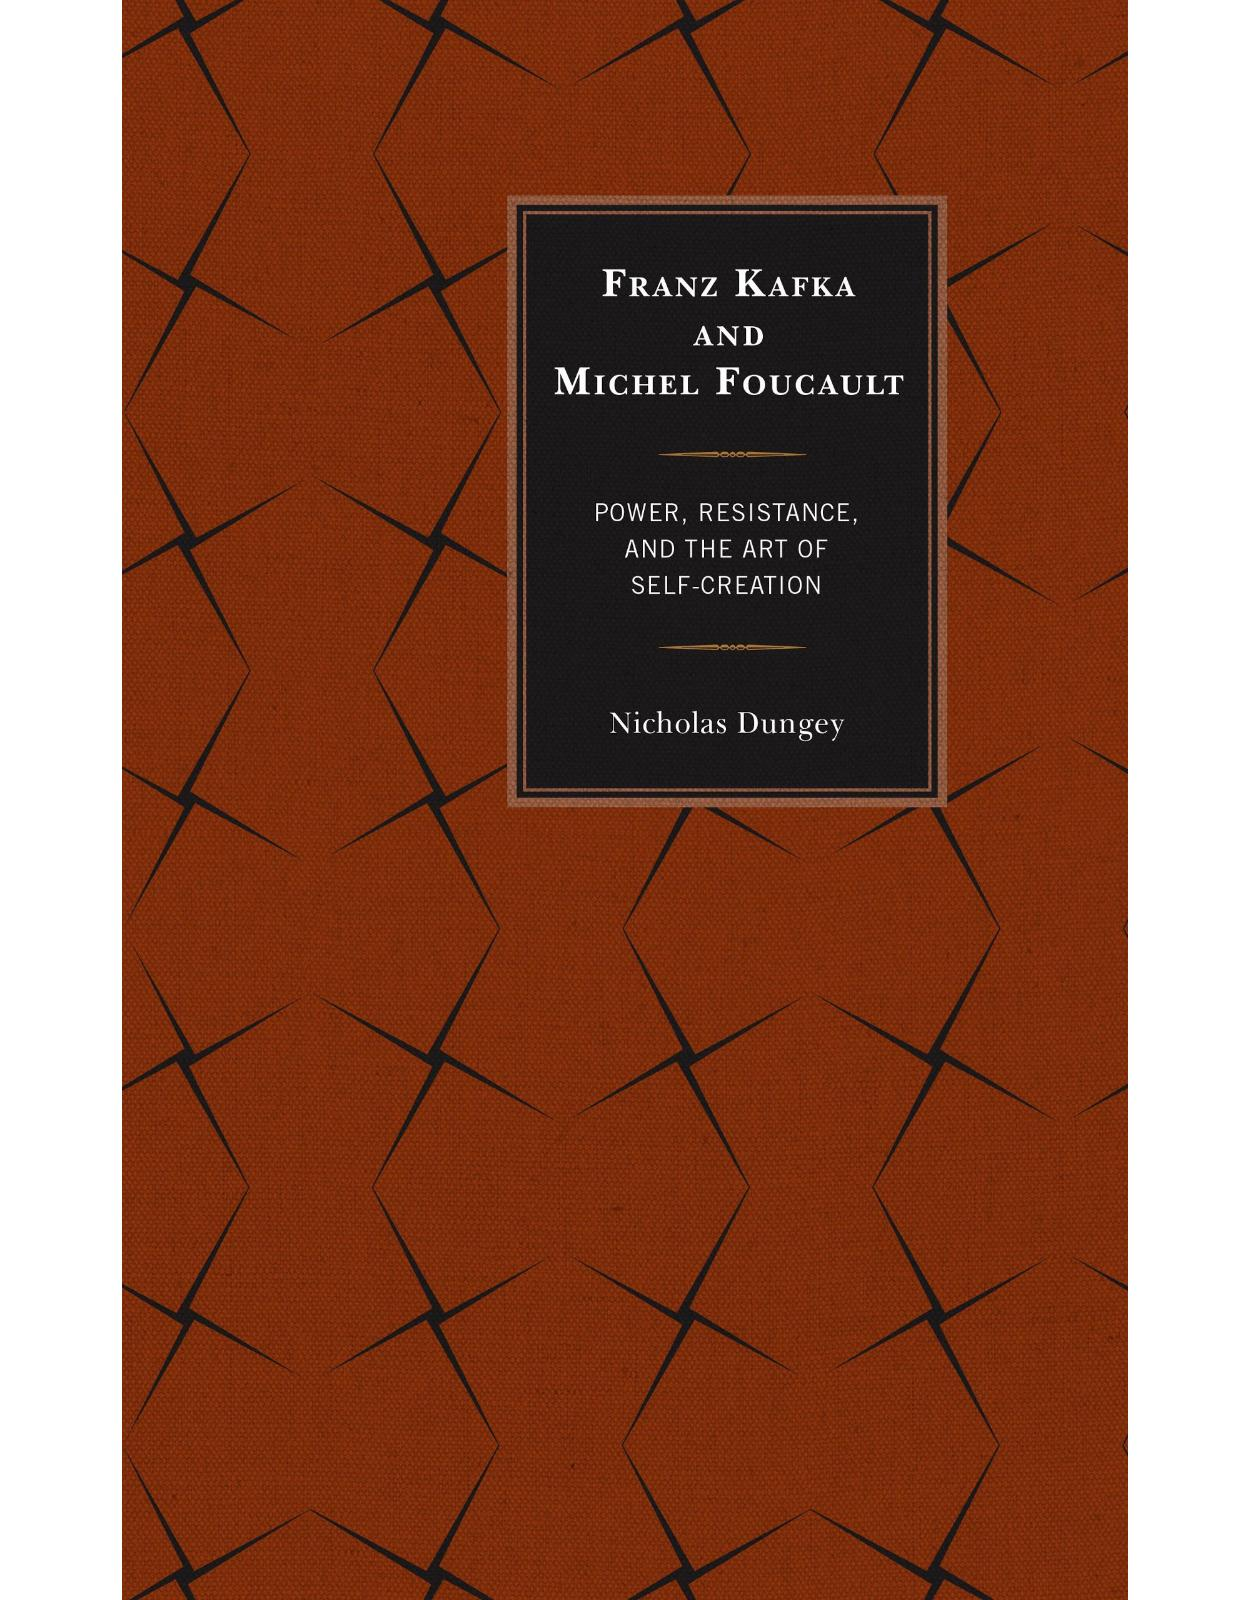 Franz Kafka and Michel Foucault: Power, Resistance, and the Art of Self-Creation